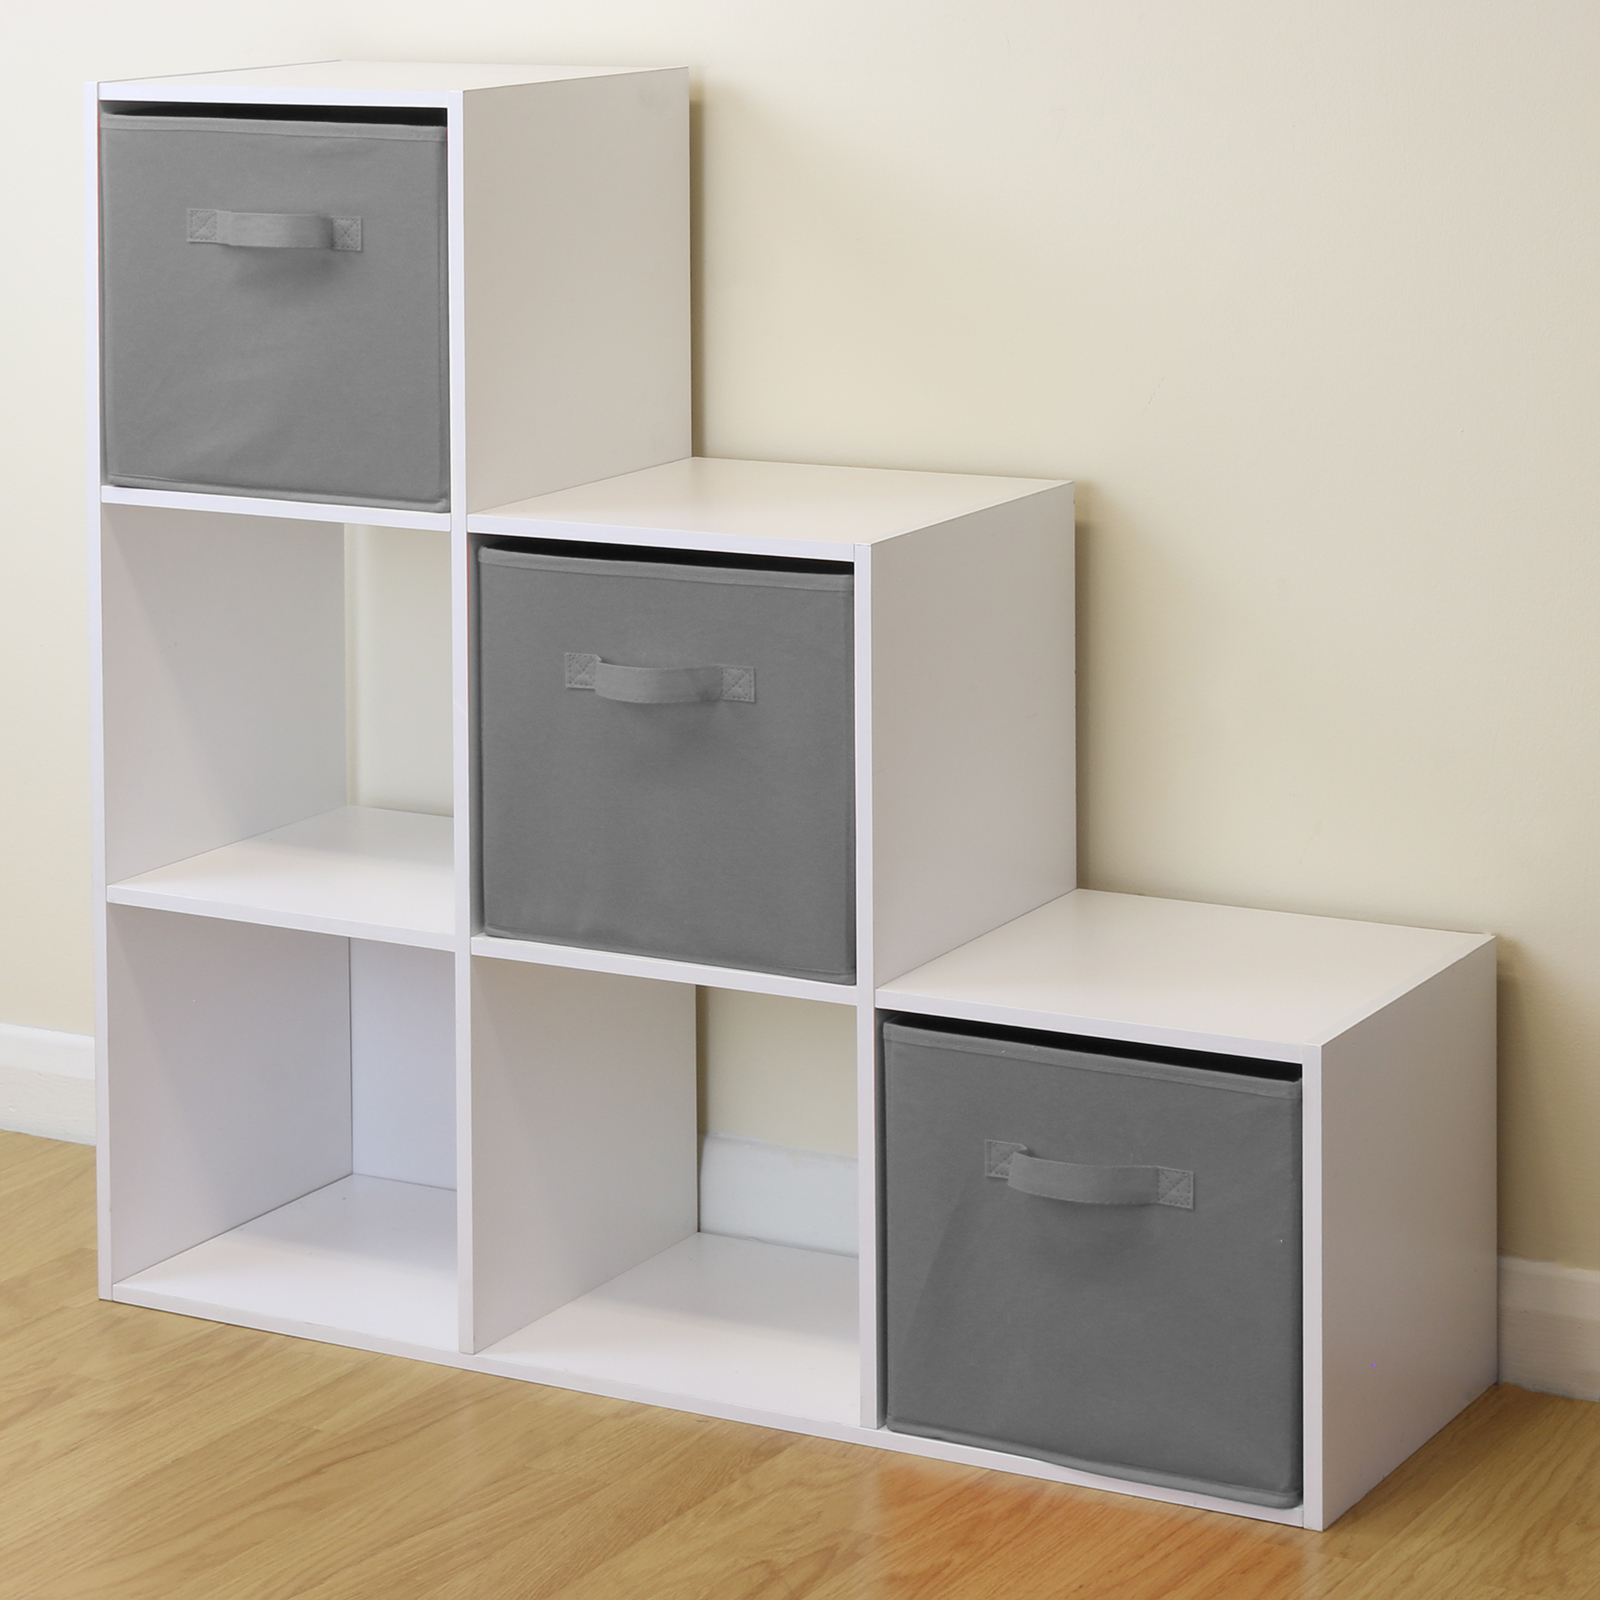 Sentinel White 6 Cube Kids Toy/Games Storage Unit Girls/Boys Bedroom  Shelves 3 Grey